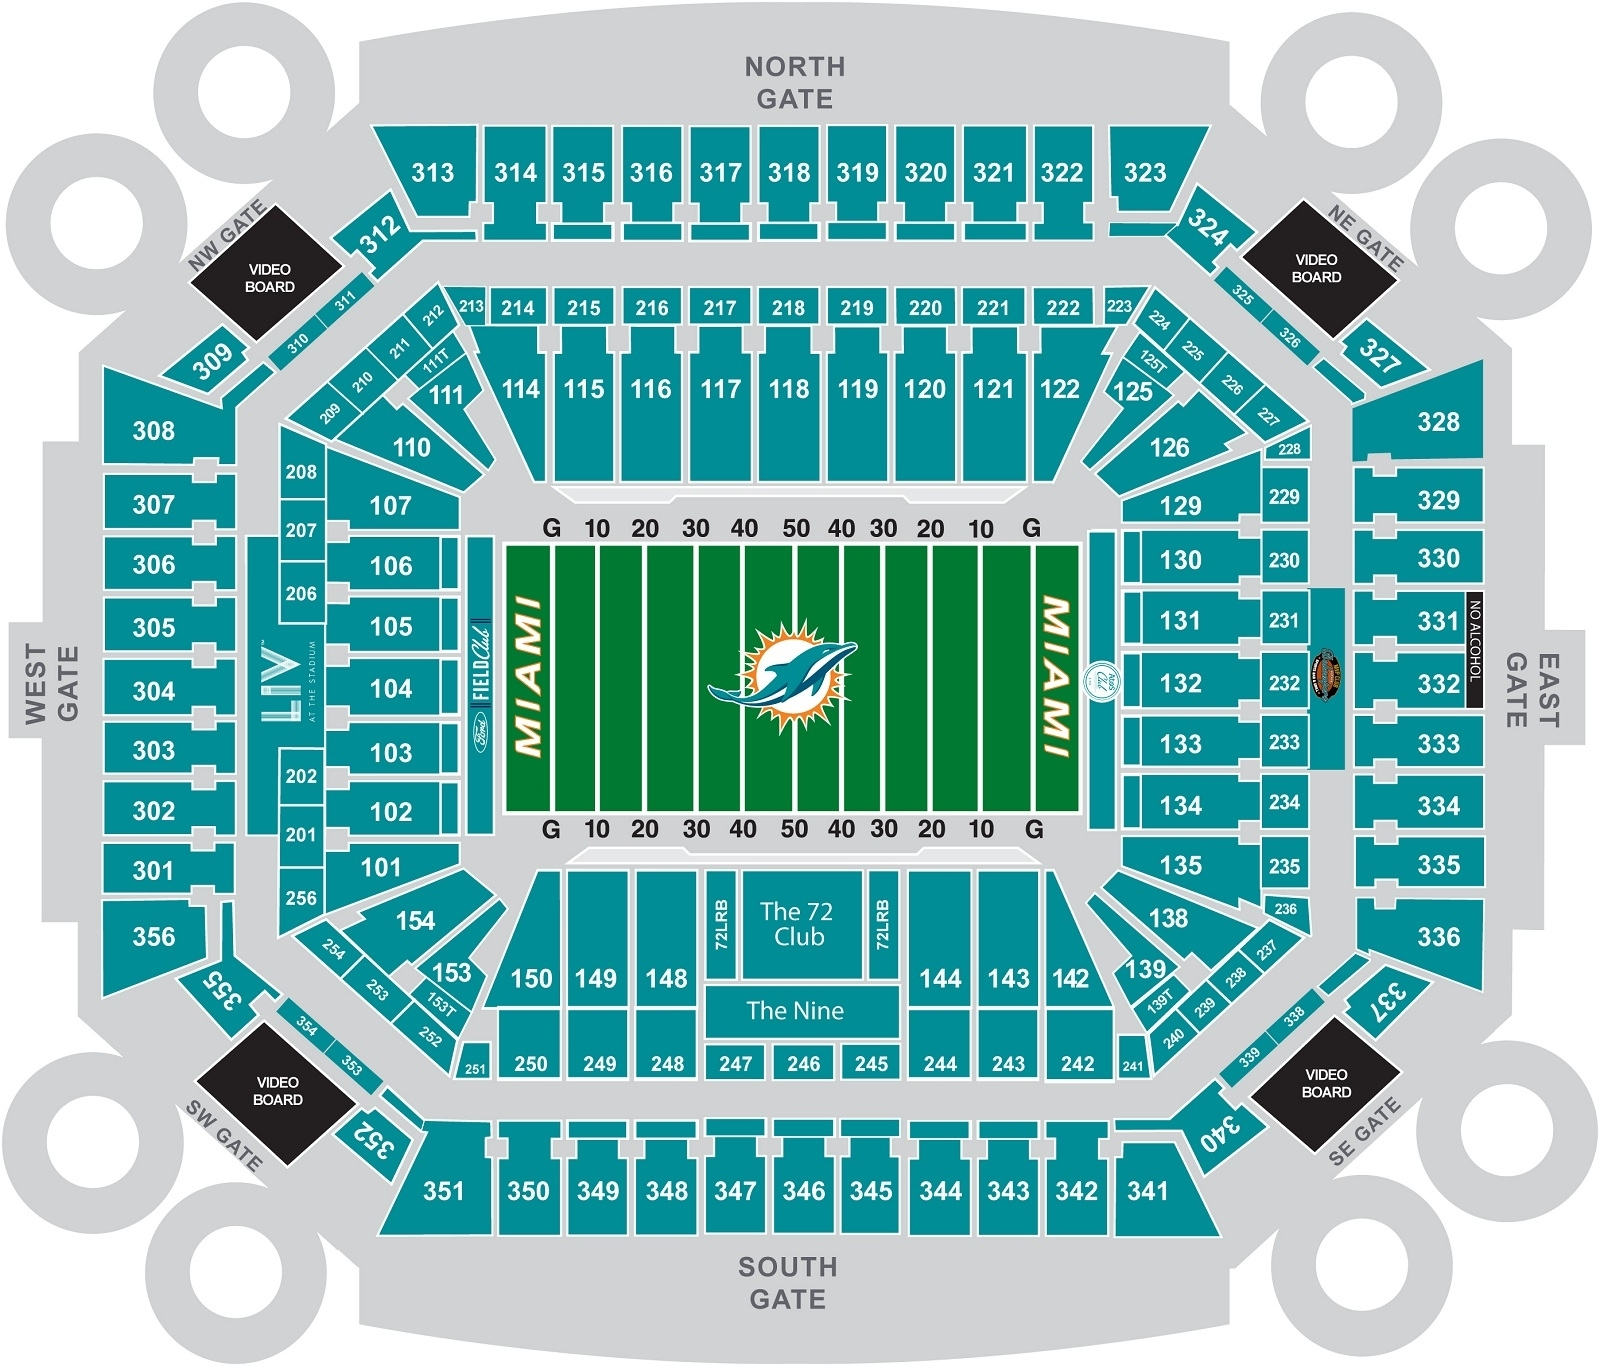 2020 Super Bowl Seating Chart   February 2, 2020   Fan within Super Bowl 53 Seating Capacity